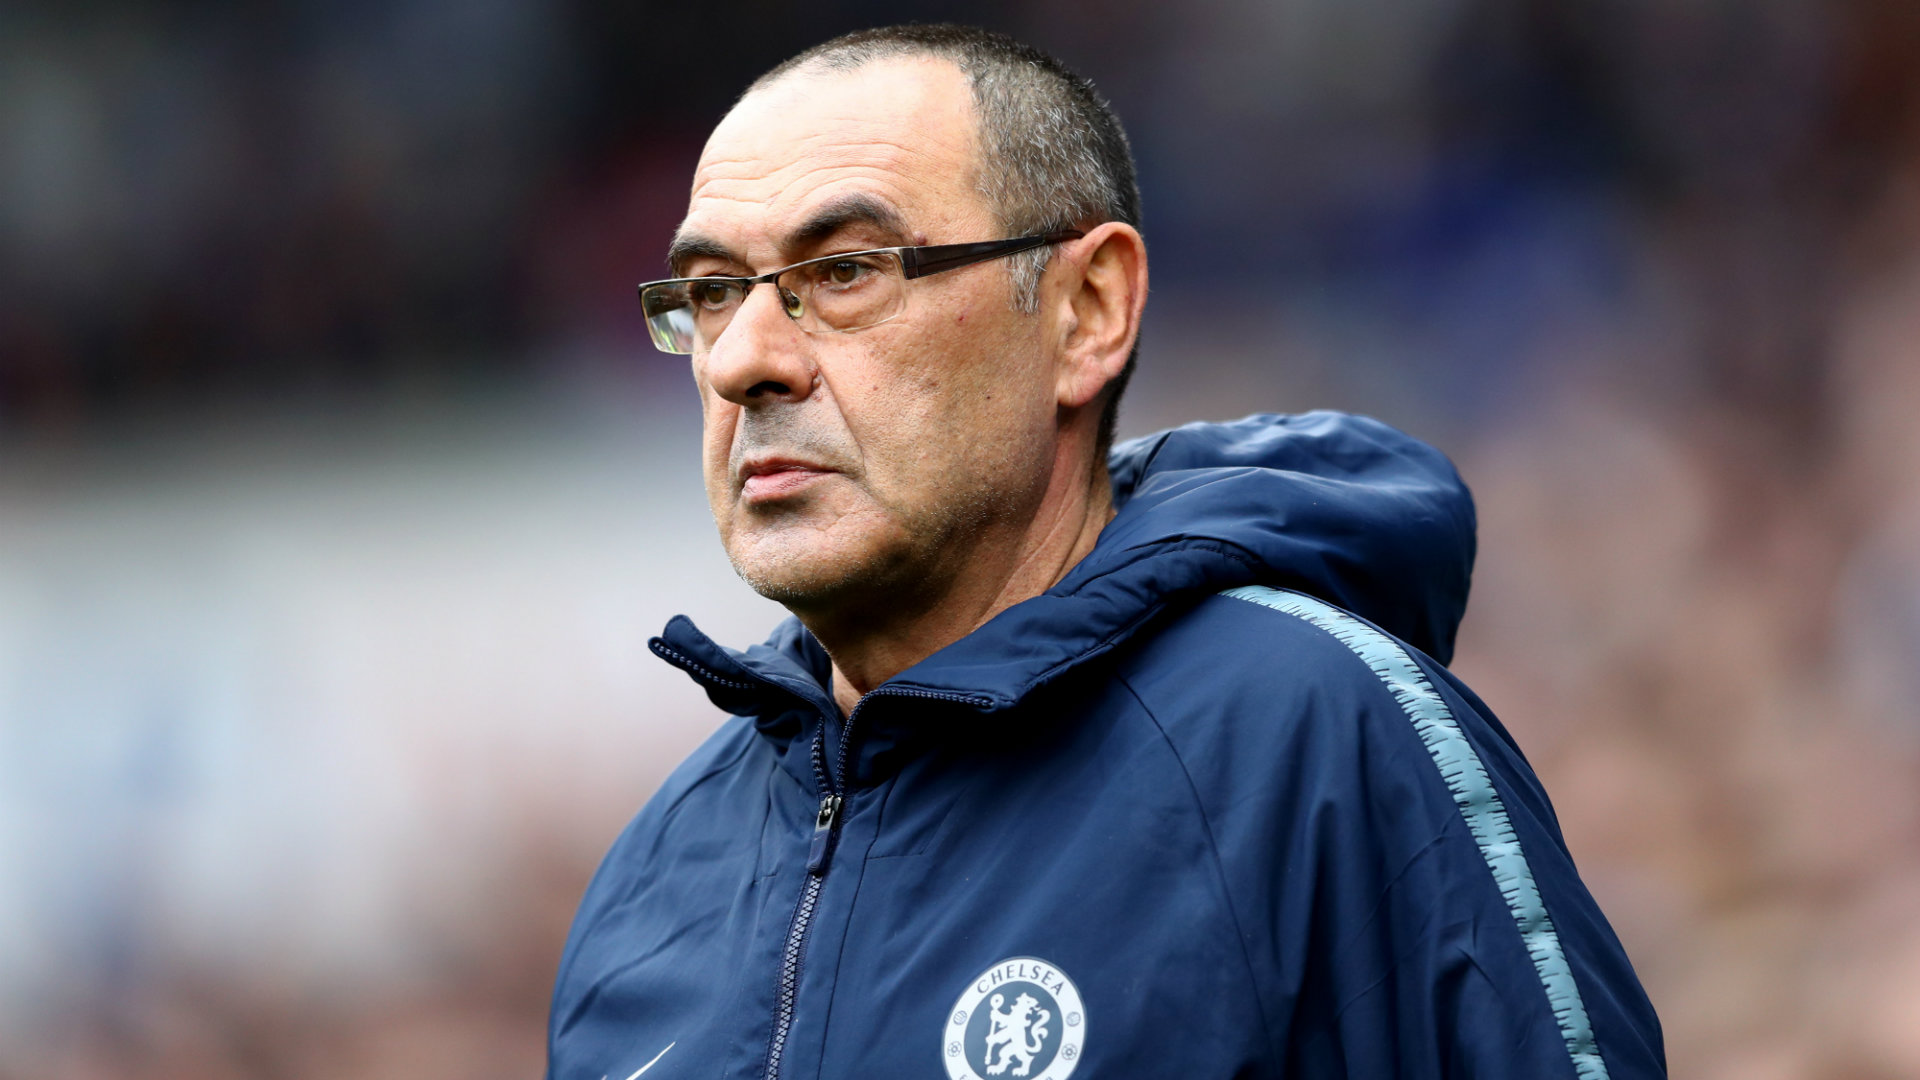 Sarri hails Chelsea trio and fans after win over Brighton